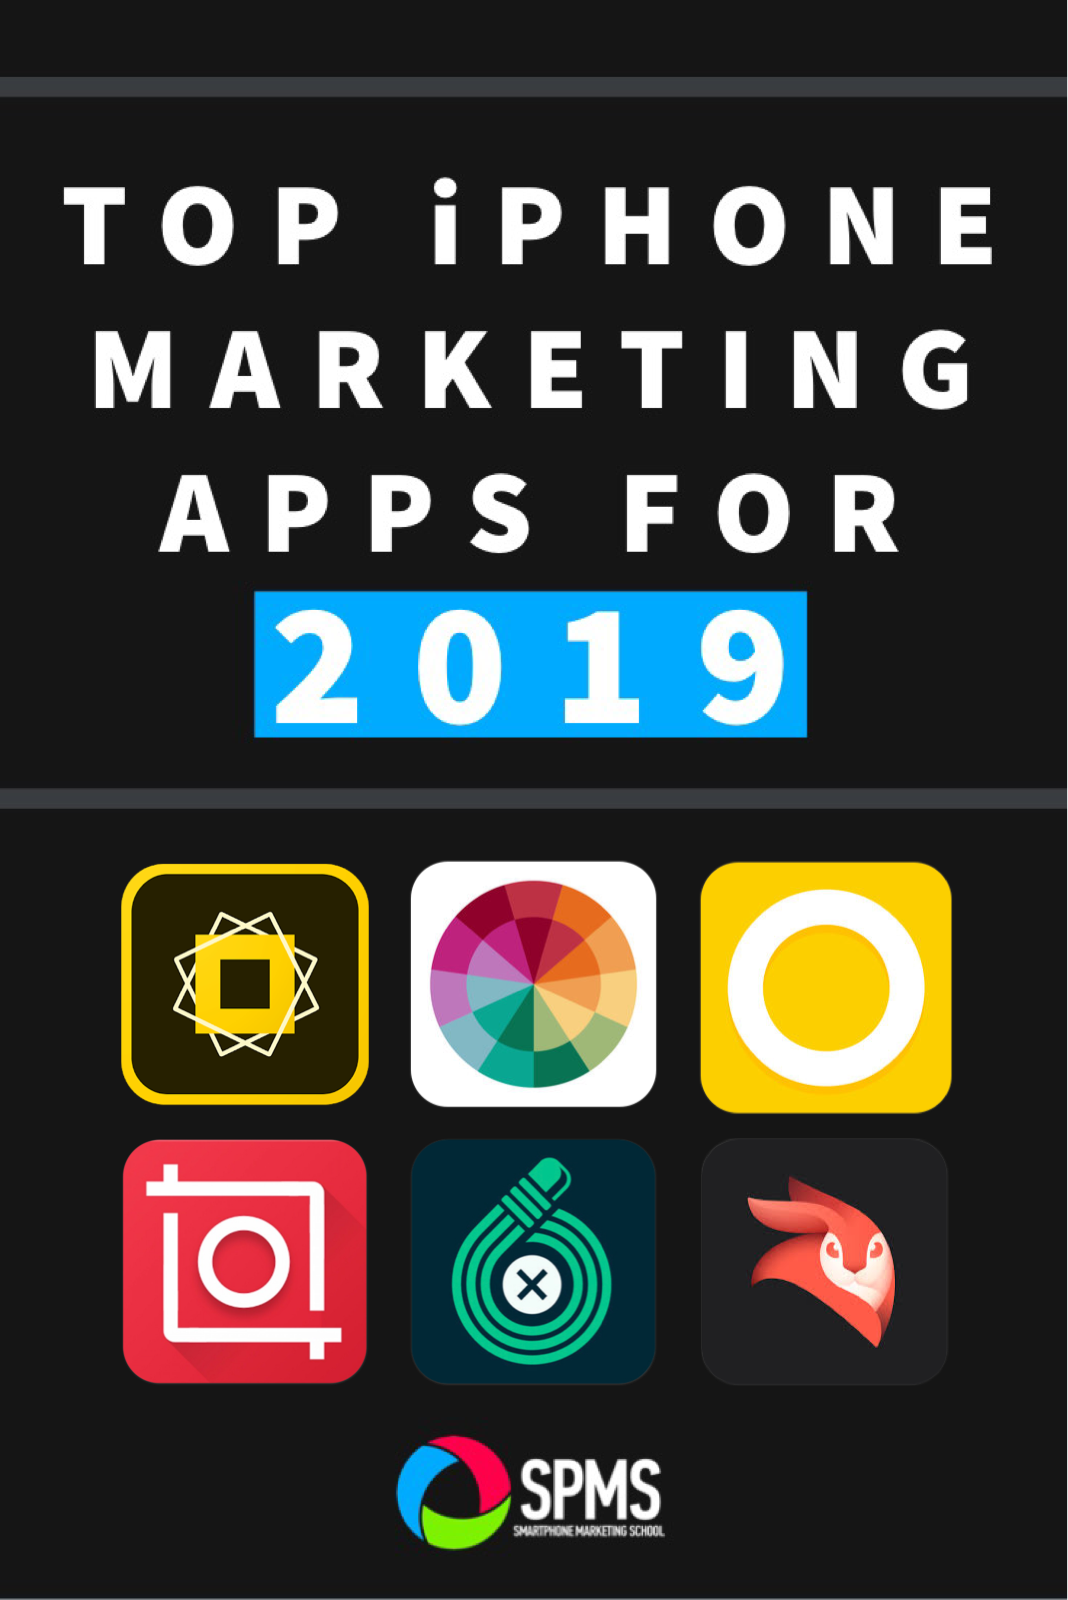 New Social Media Apps 2019 Top Marketing Apps You Need for Social Media in 2019 | iPhone